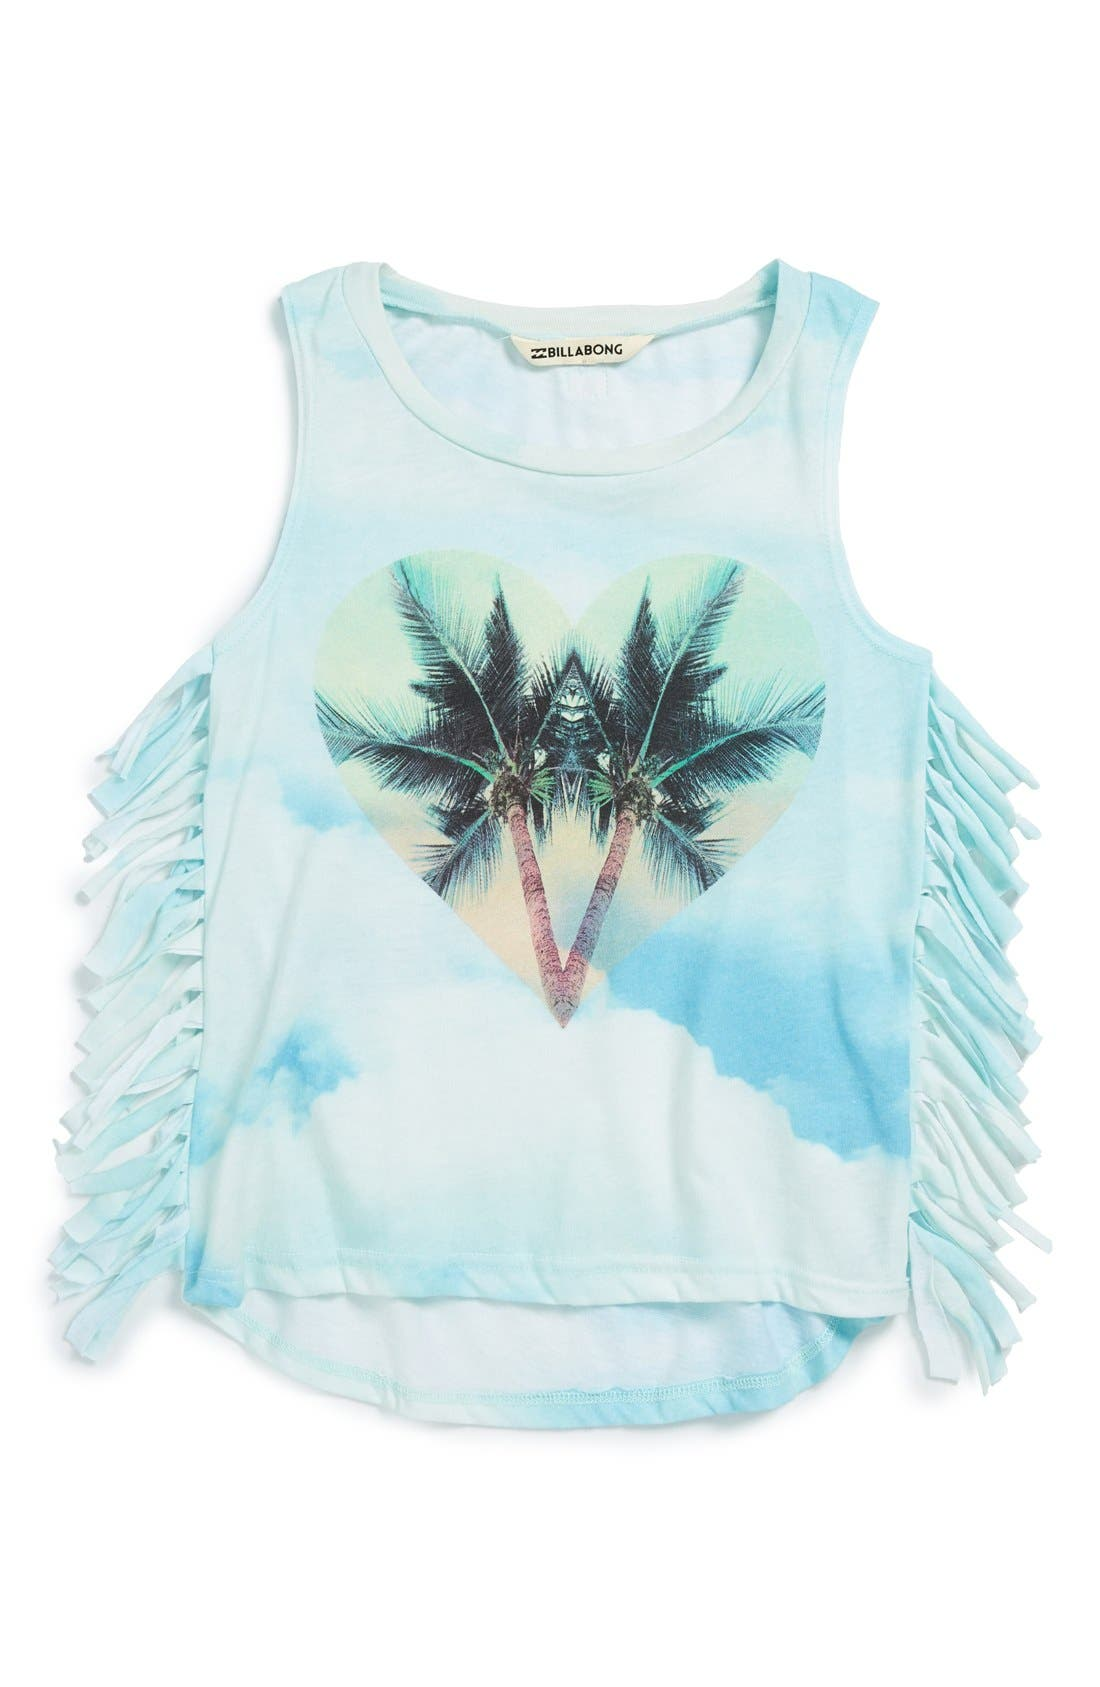 Alternate Image 1 Selected - Billabong 'Reachin Out' Graphic Tee (Big Girls)